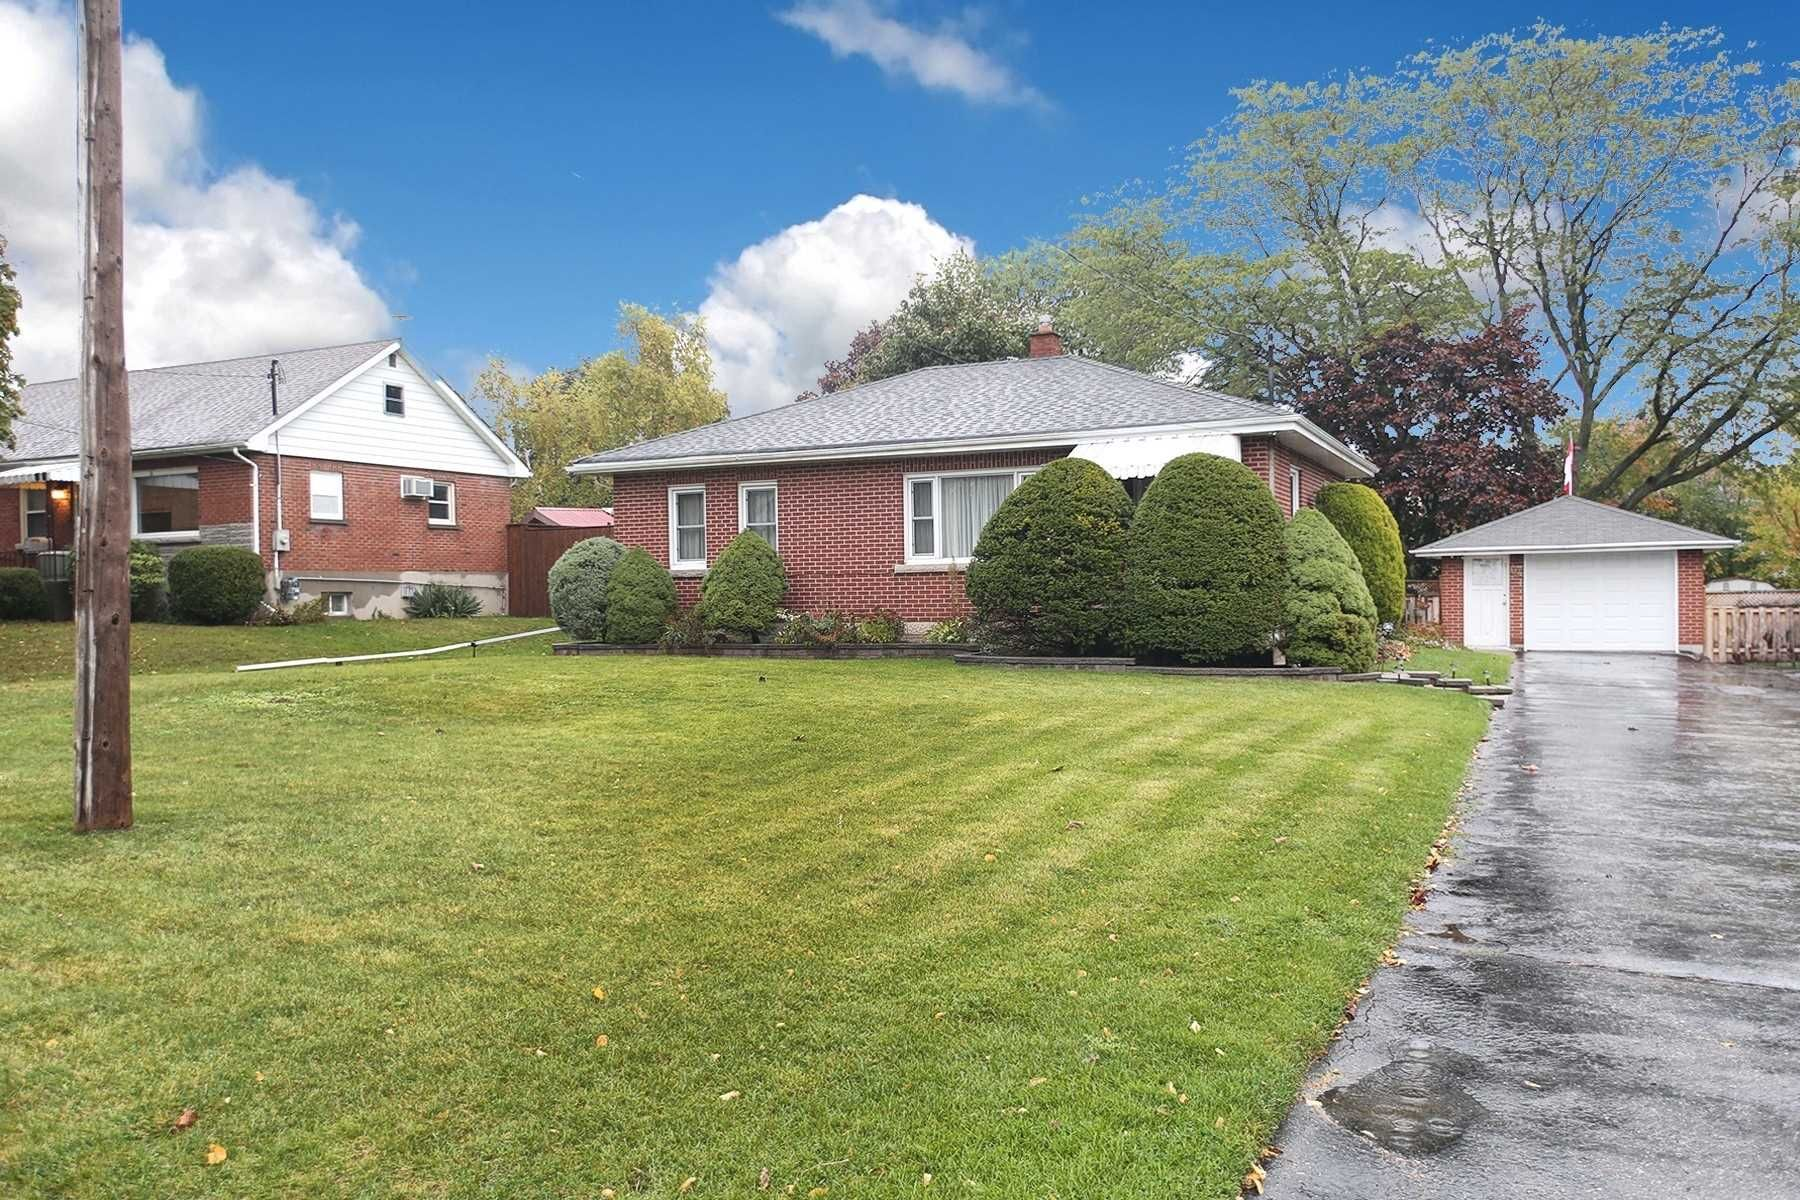 Main Photo: 67 S Elizabeth Crescent in Whitby: Blue Grass Meadows House (Bungalow) for sale : MLS®# E4609796